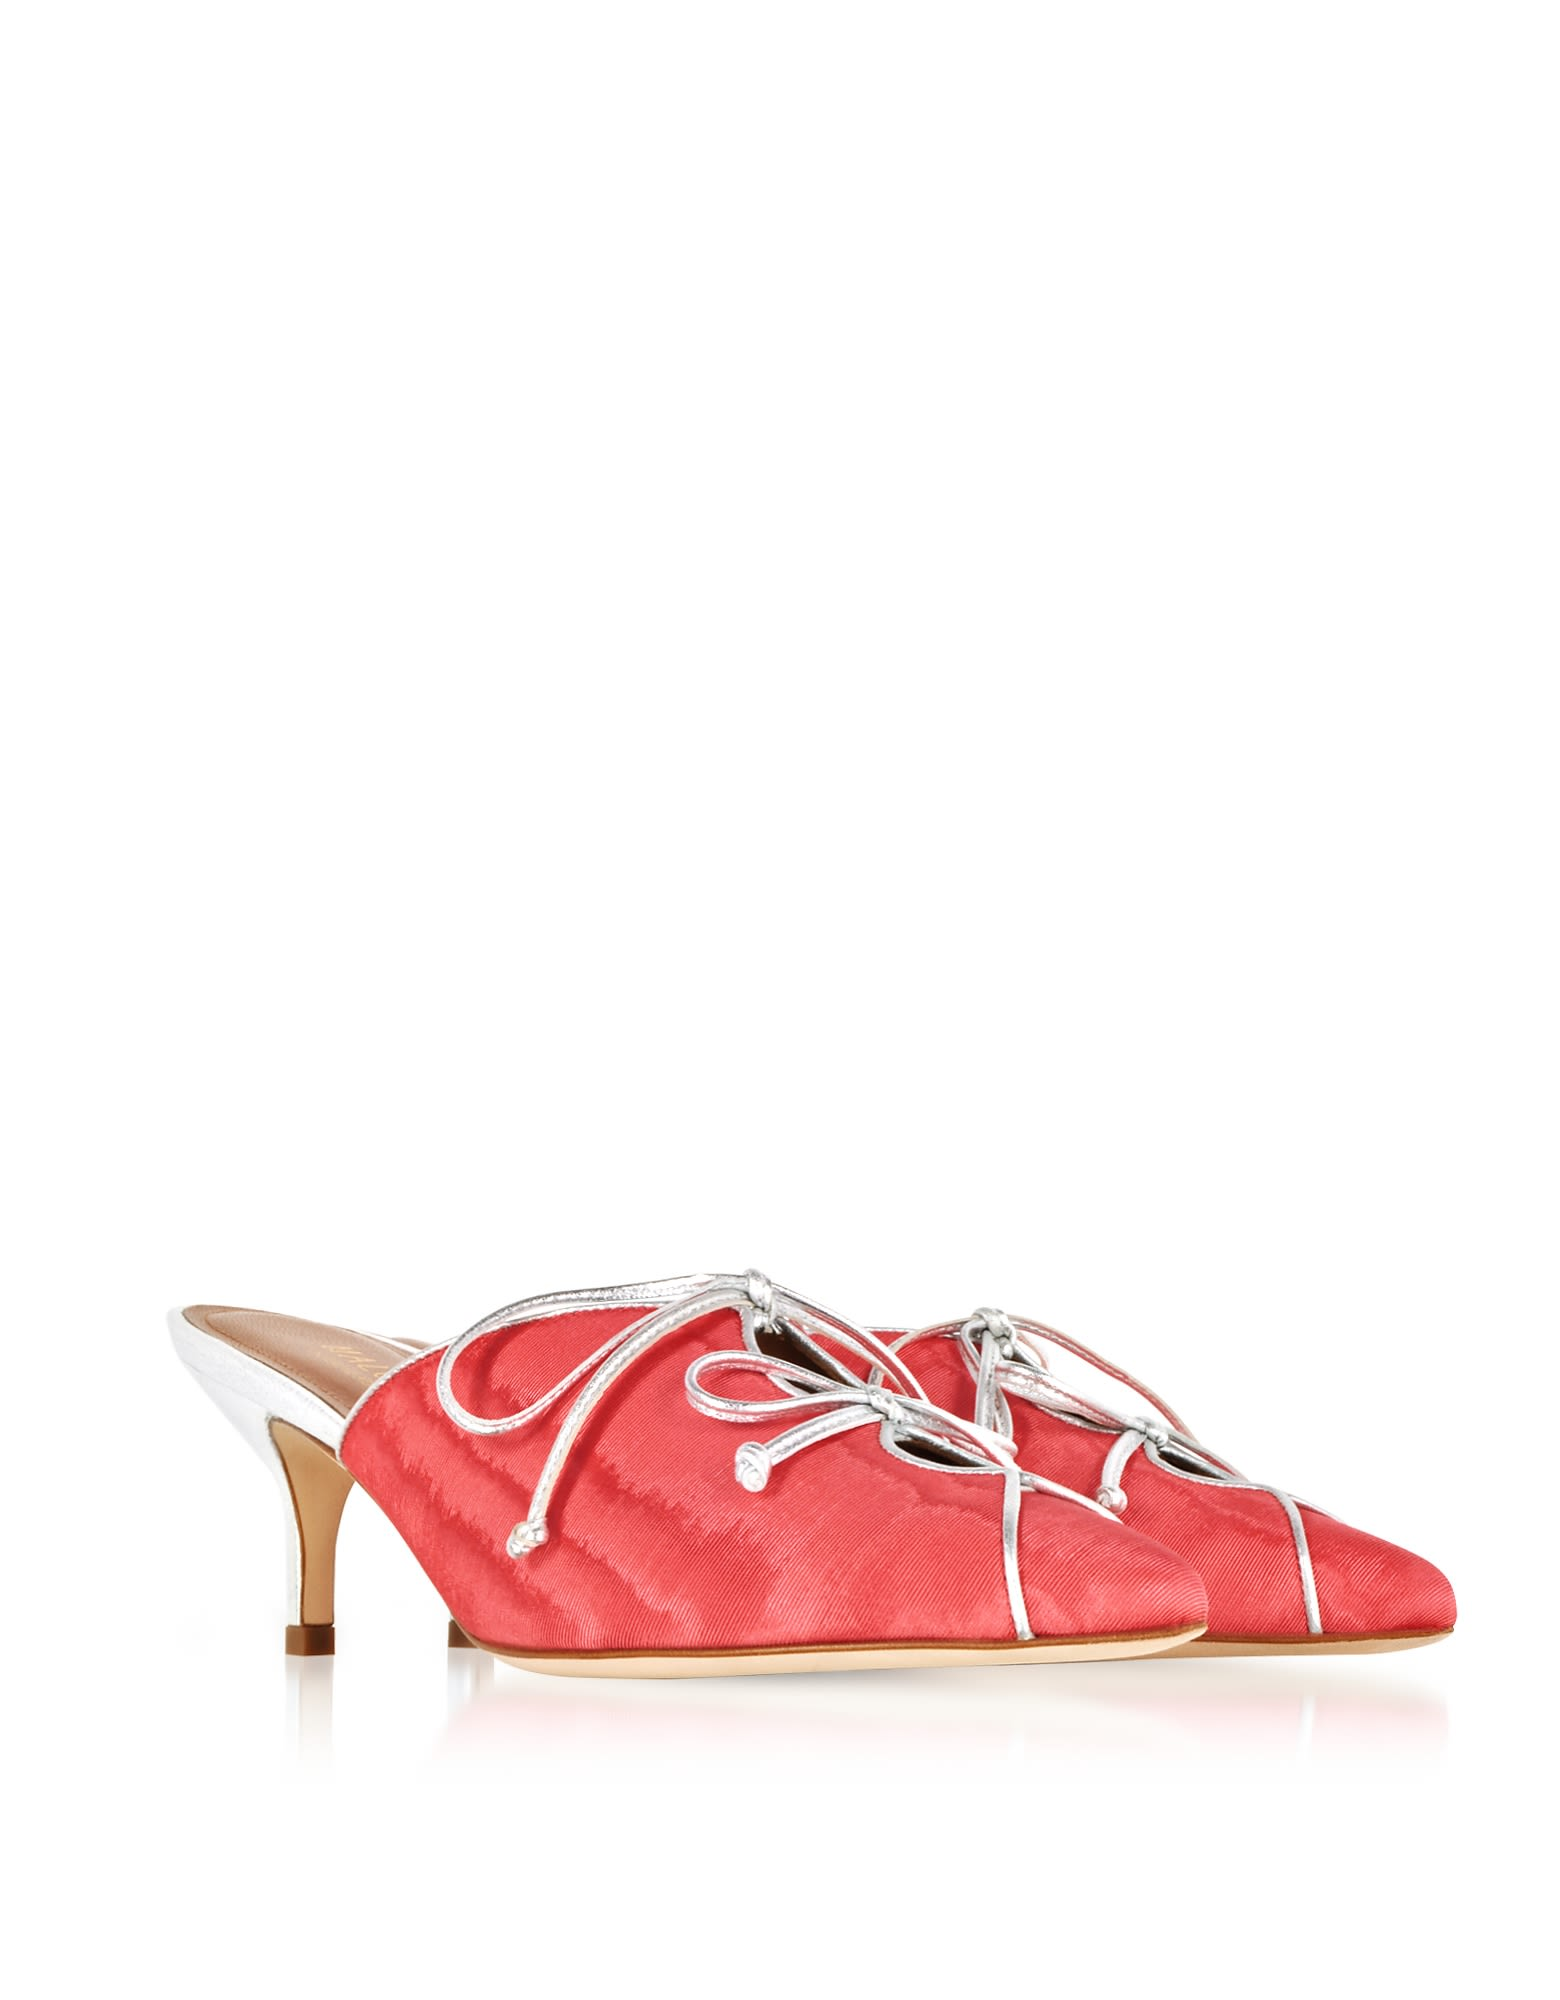 MALONE SOULIERS Designer Shoes, Victoria Hibiscus Moire Fabric and Metallic Nappa Leather Mid Heel Mules